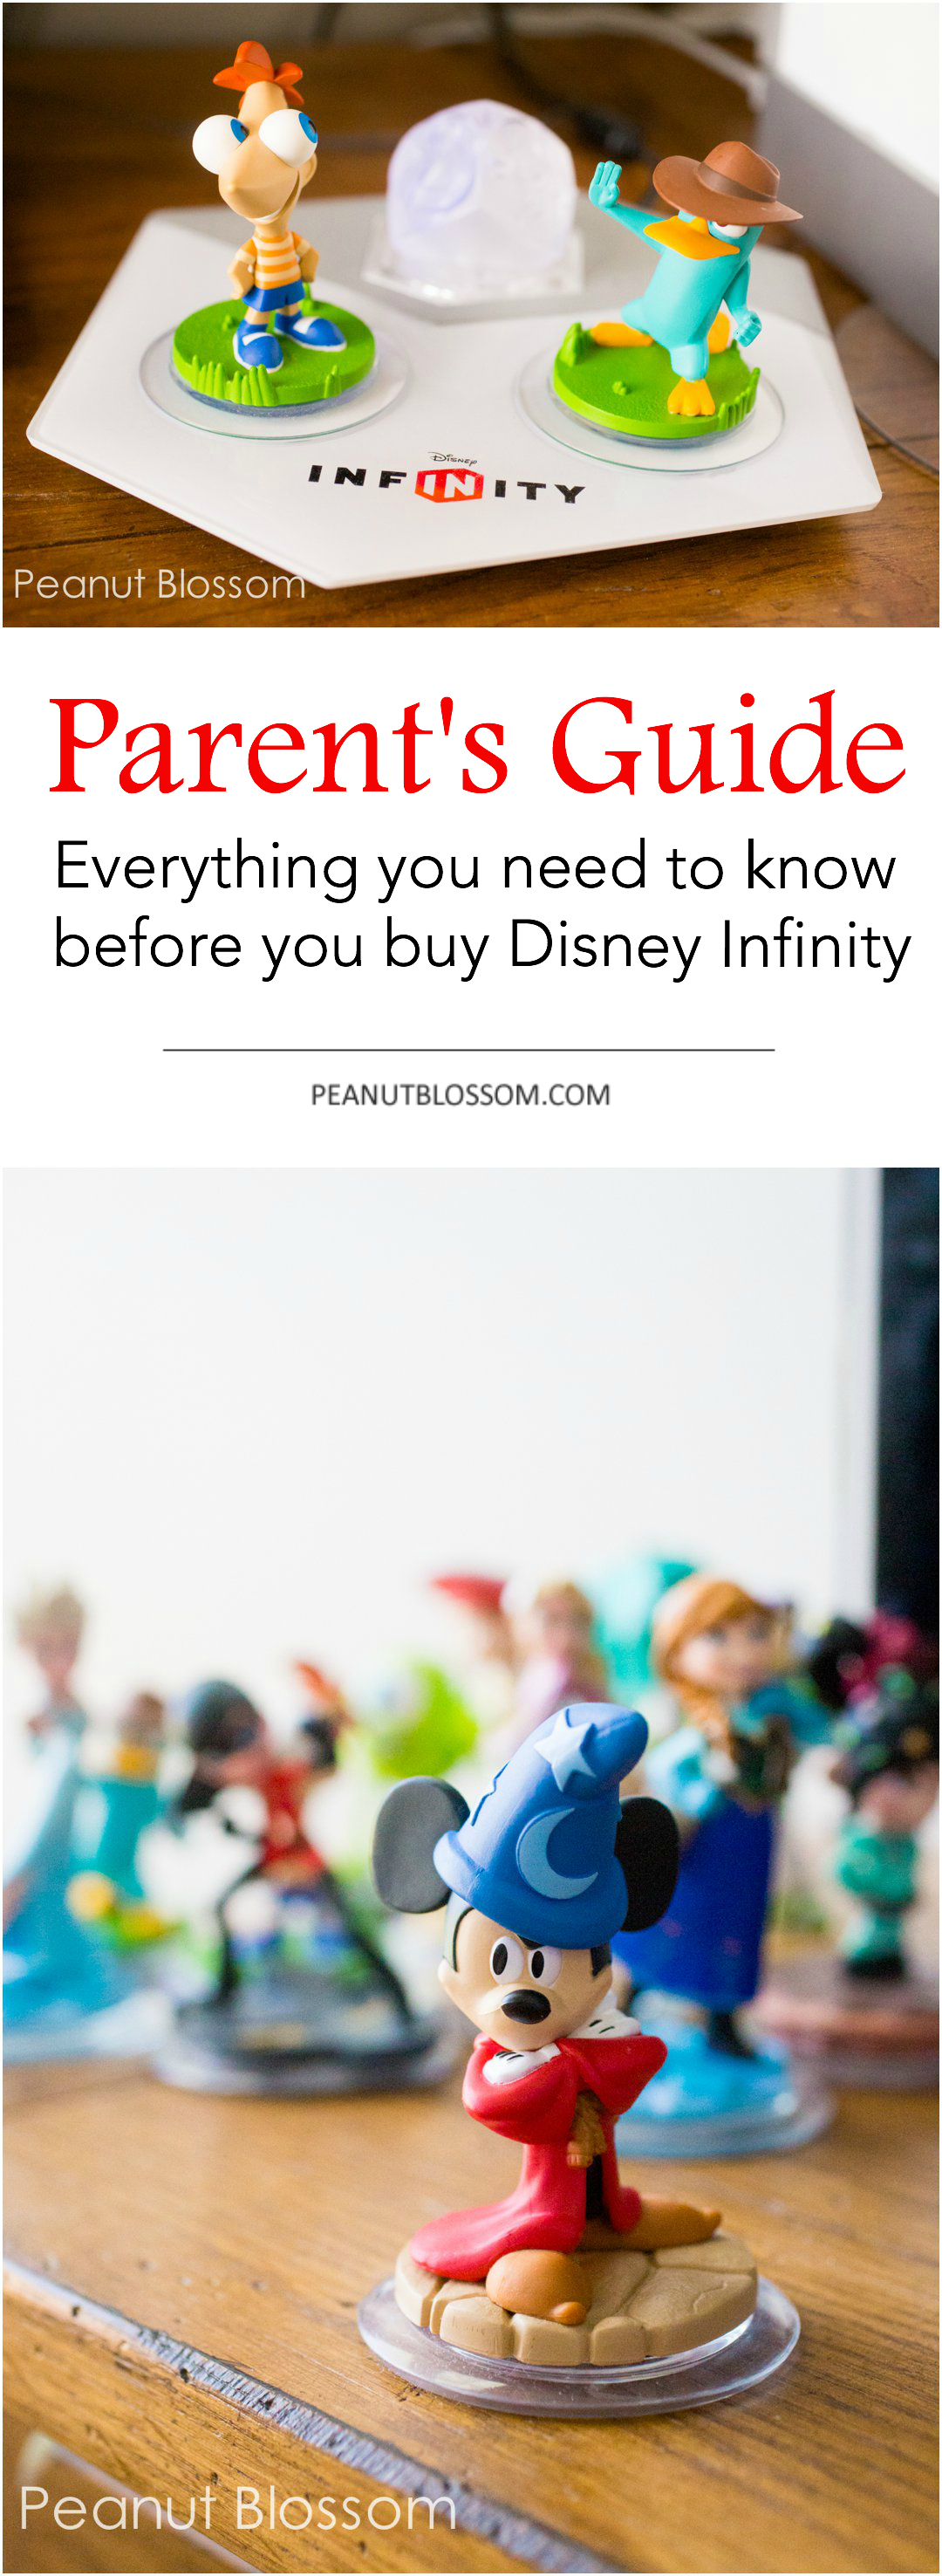 Disney Infinity: A beginner's buying guide